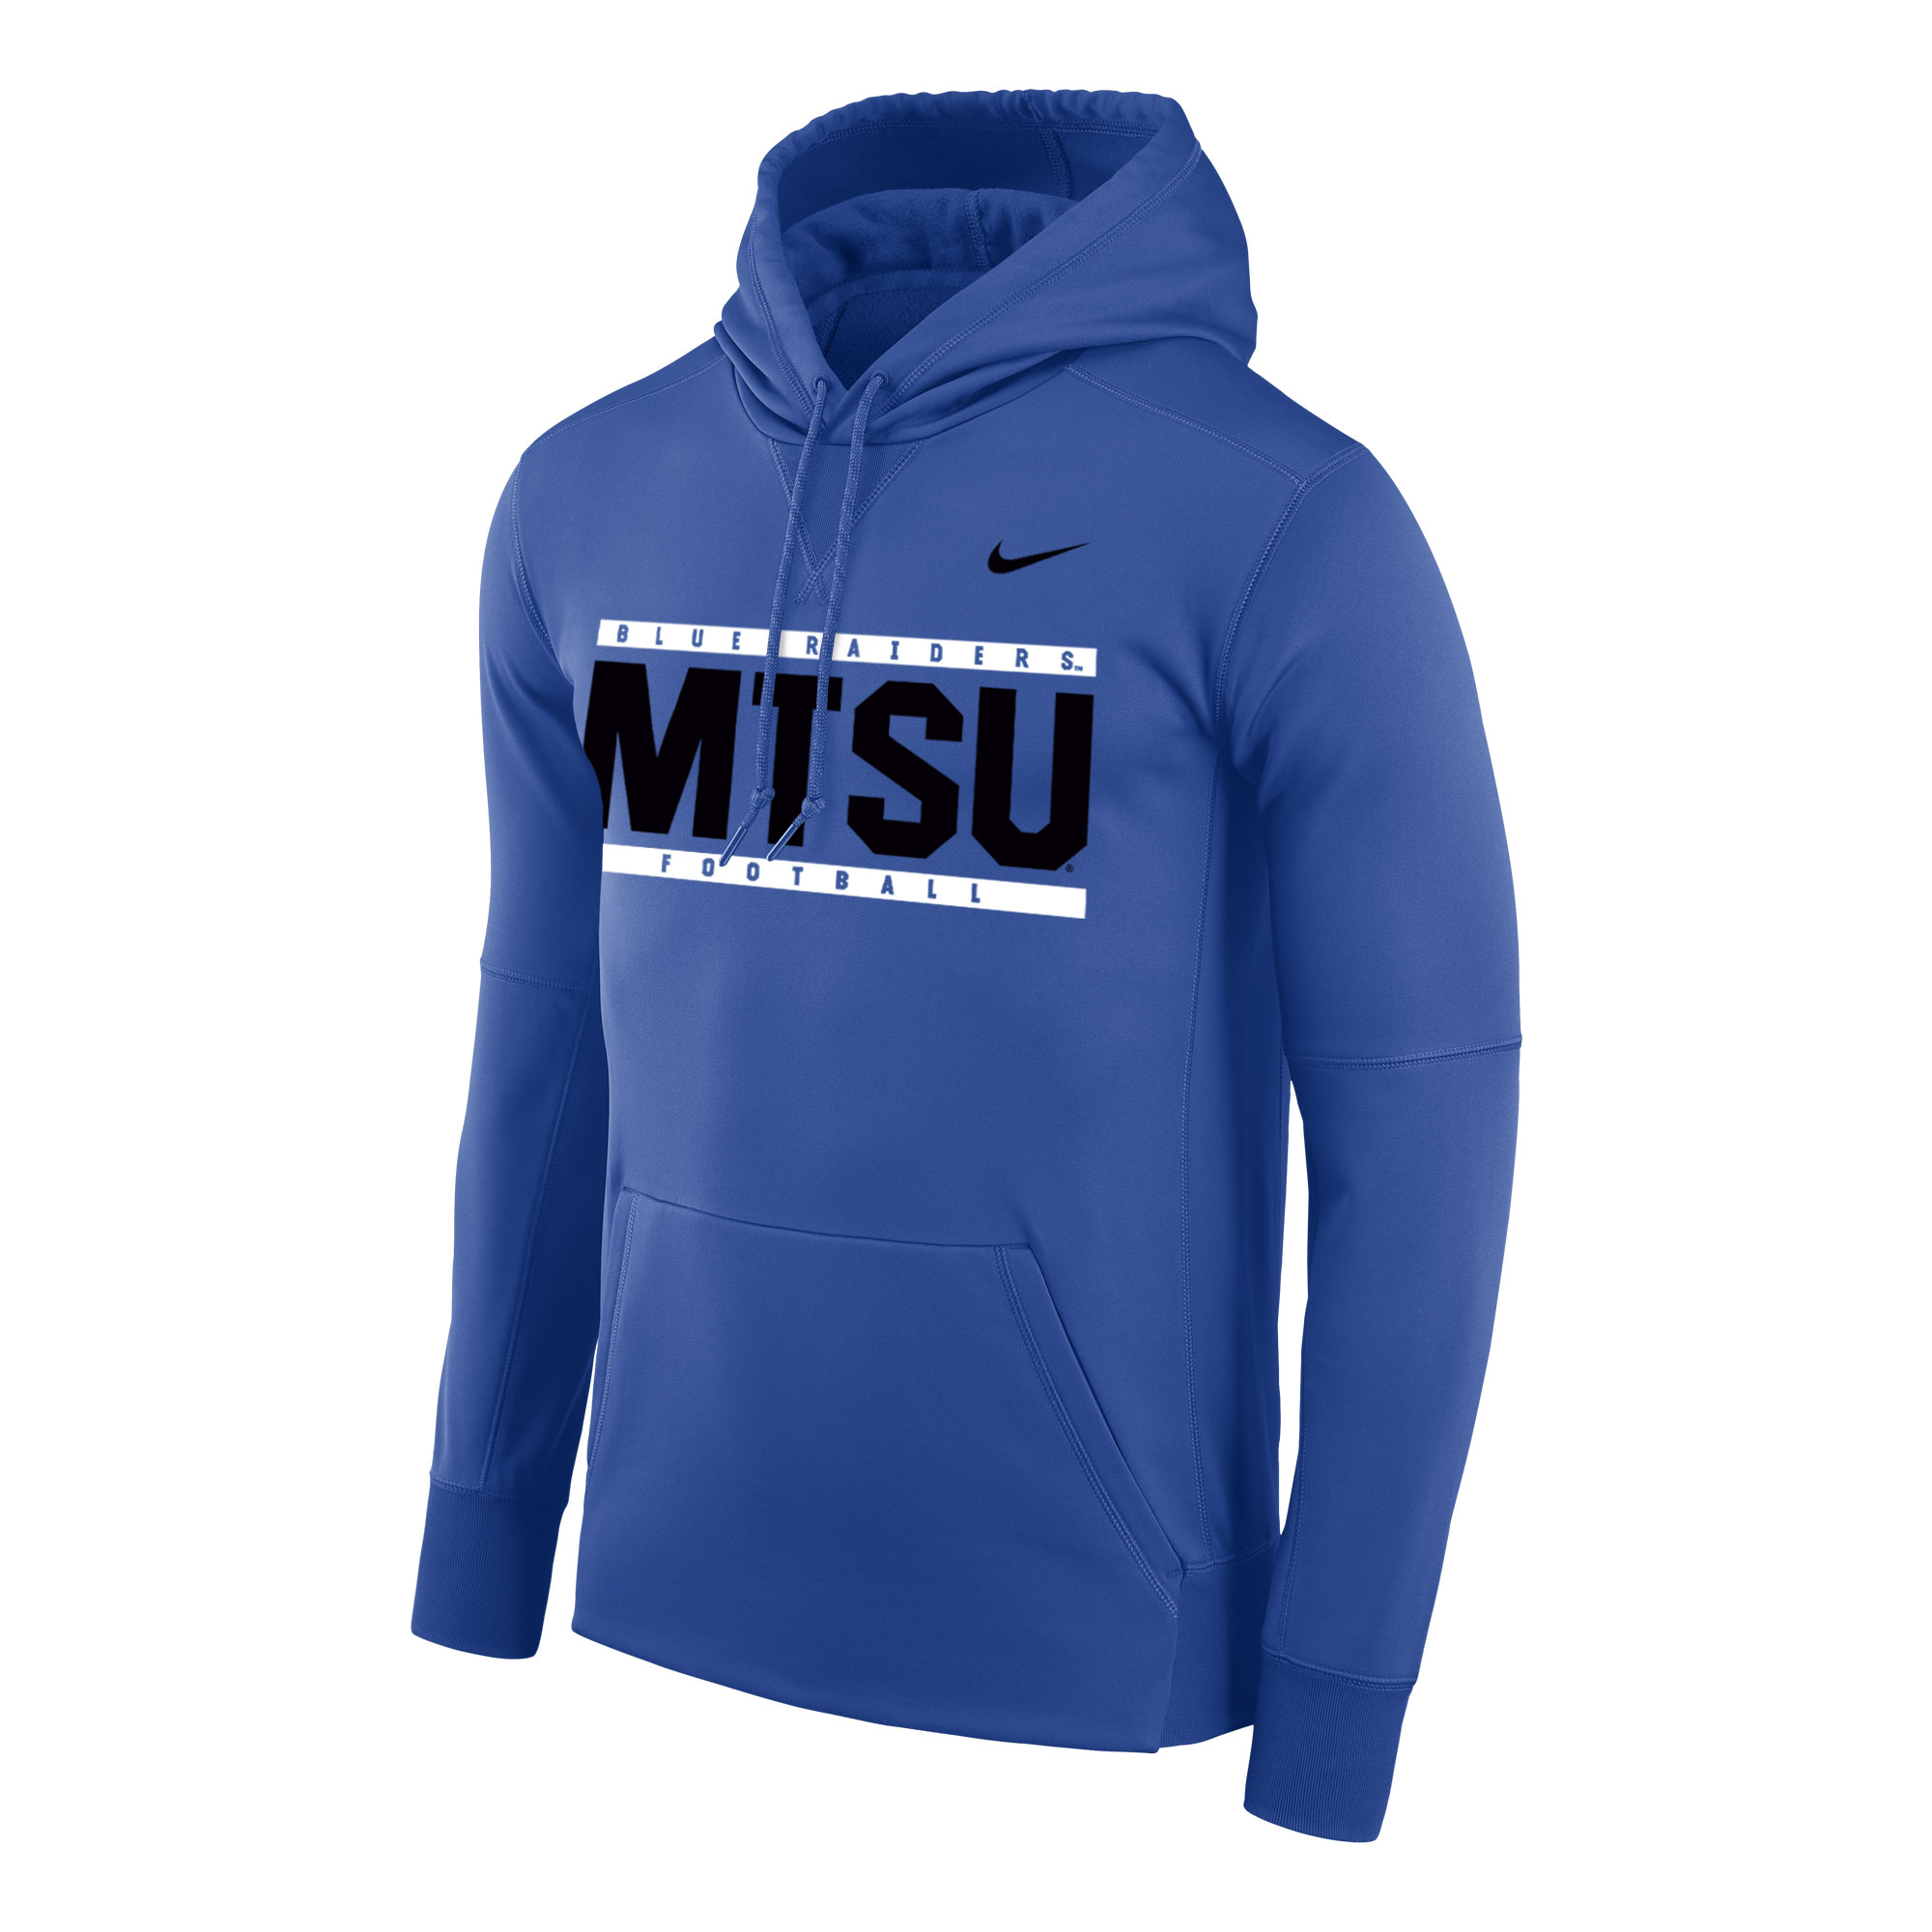 MTSU Football Nike® Therma PO Hoody